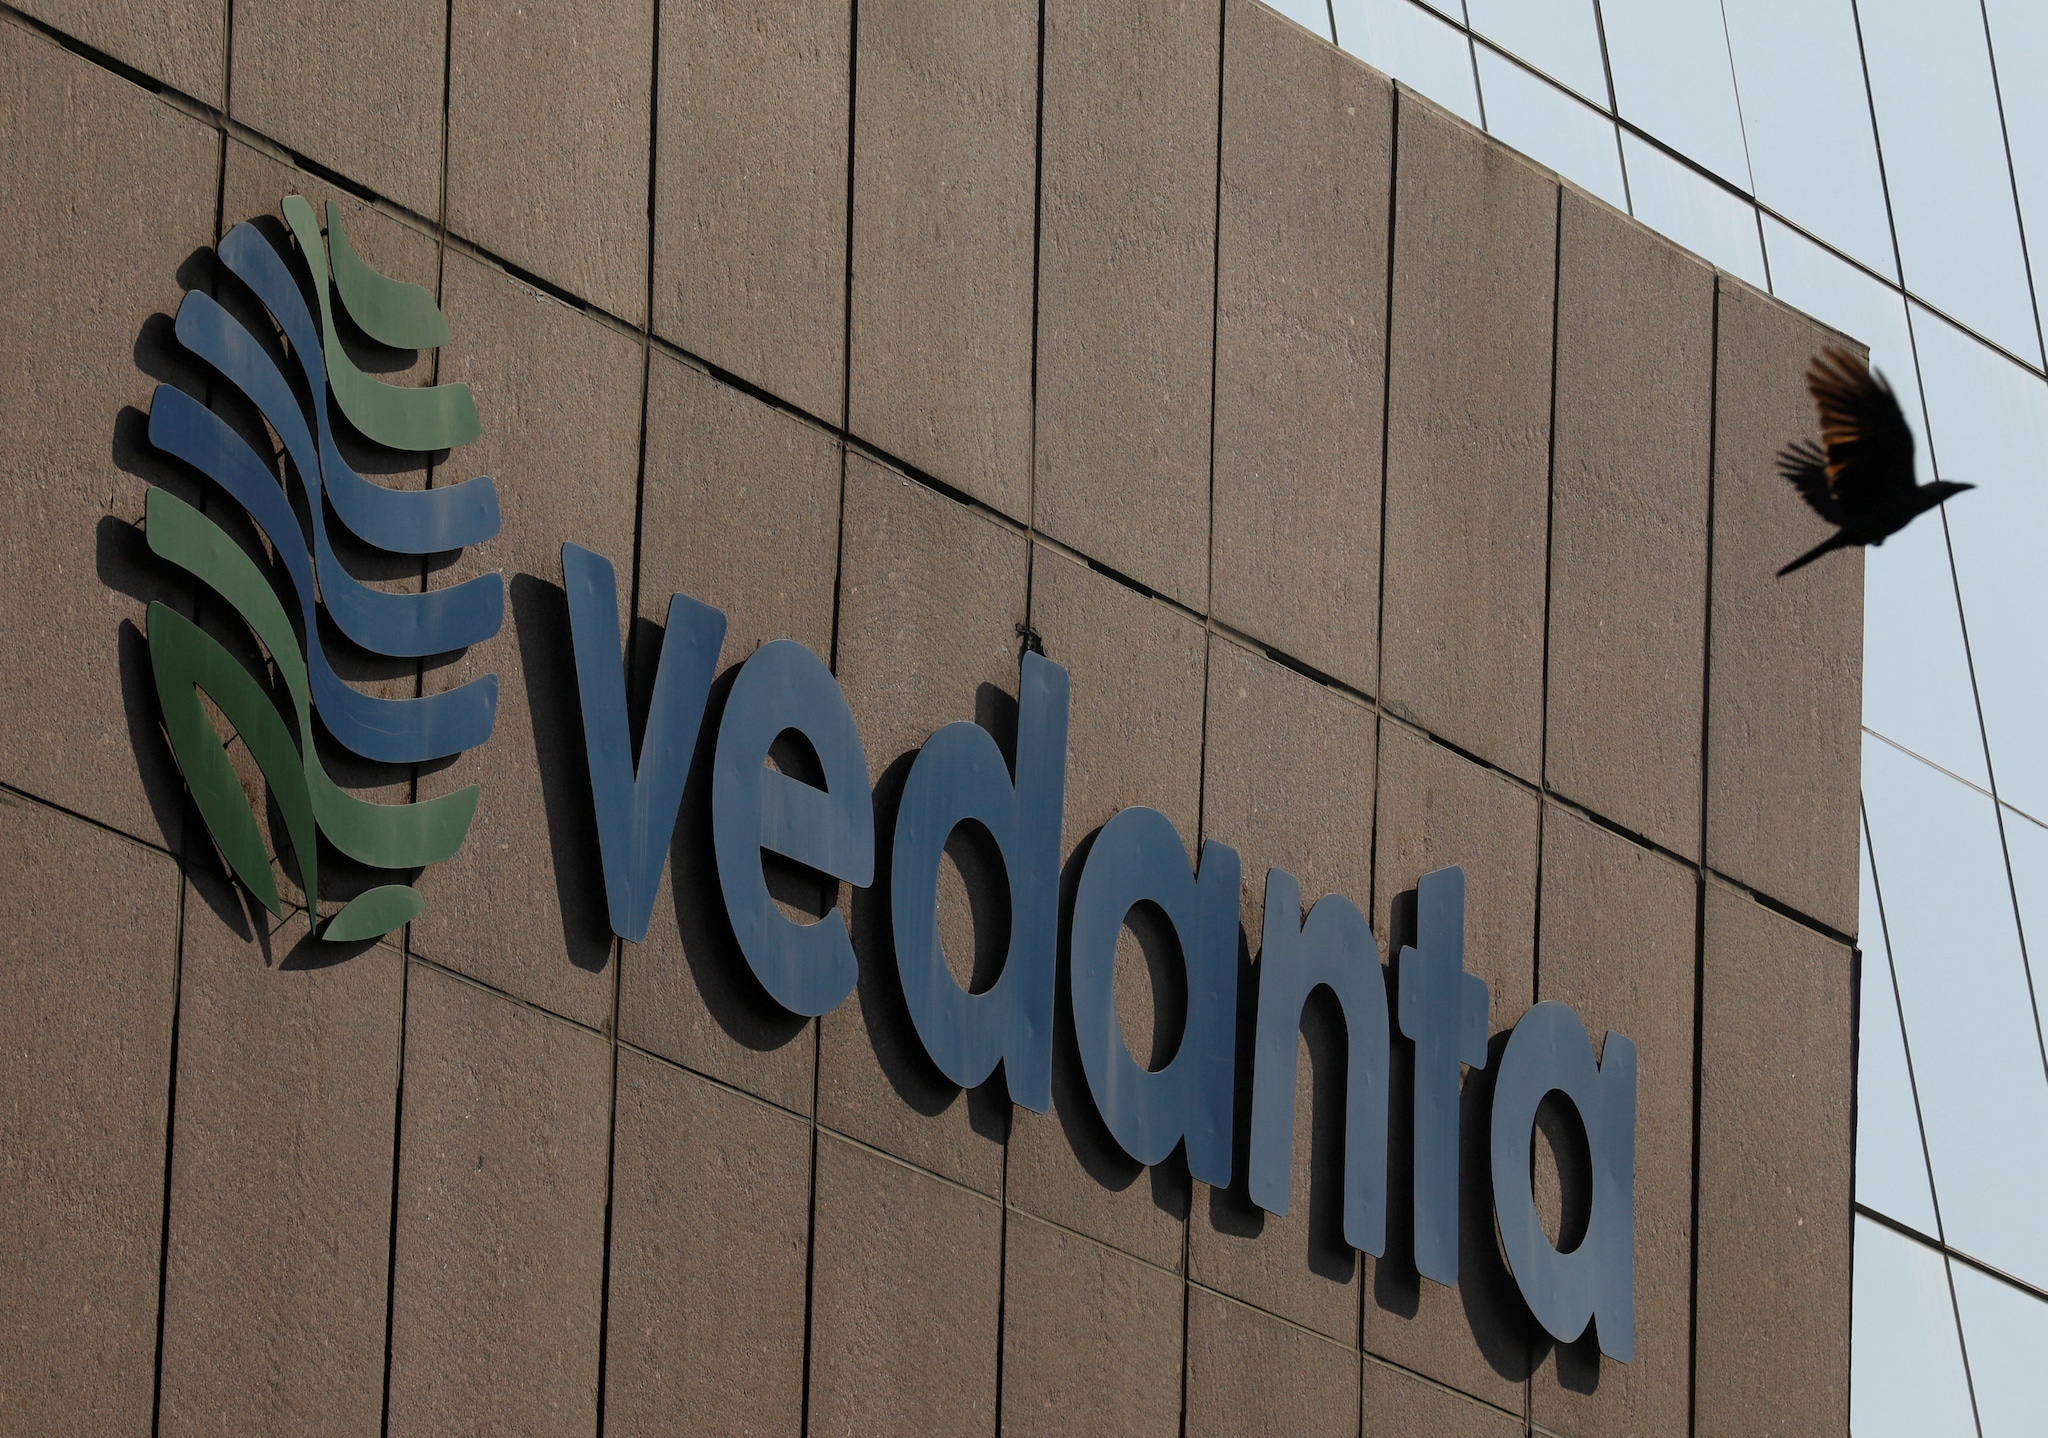 Vedanta: The company has appointed M K Sharma to the company's board as a non-executive independent director with effect from June 1, 2019. (Image: Reuters)